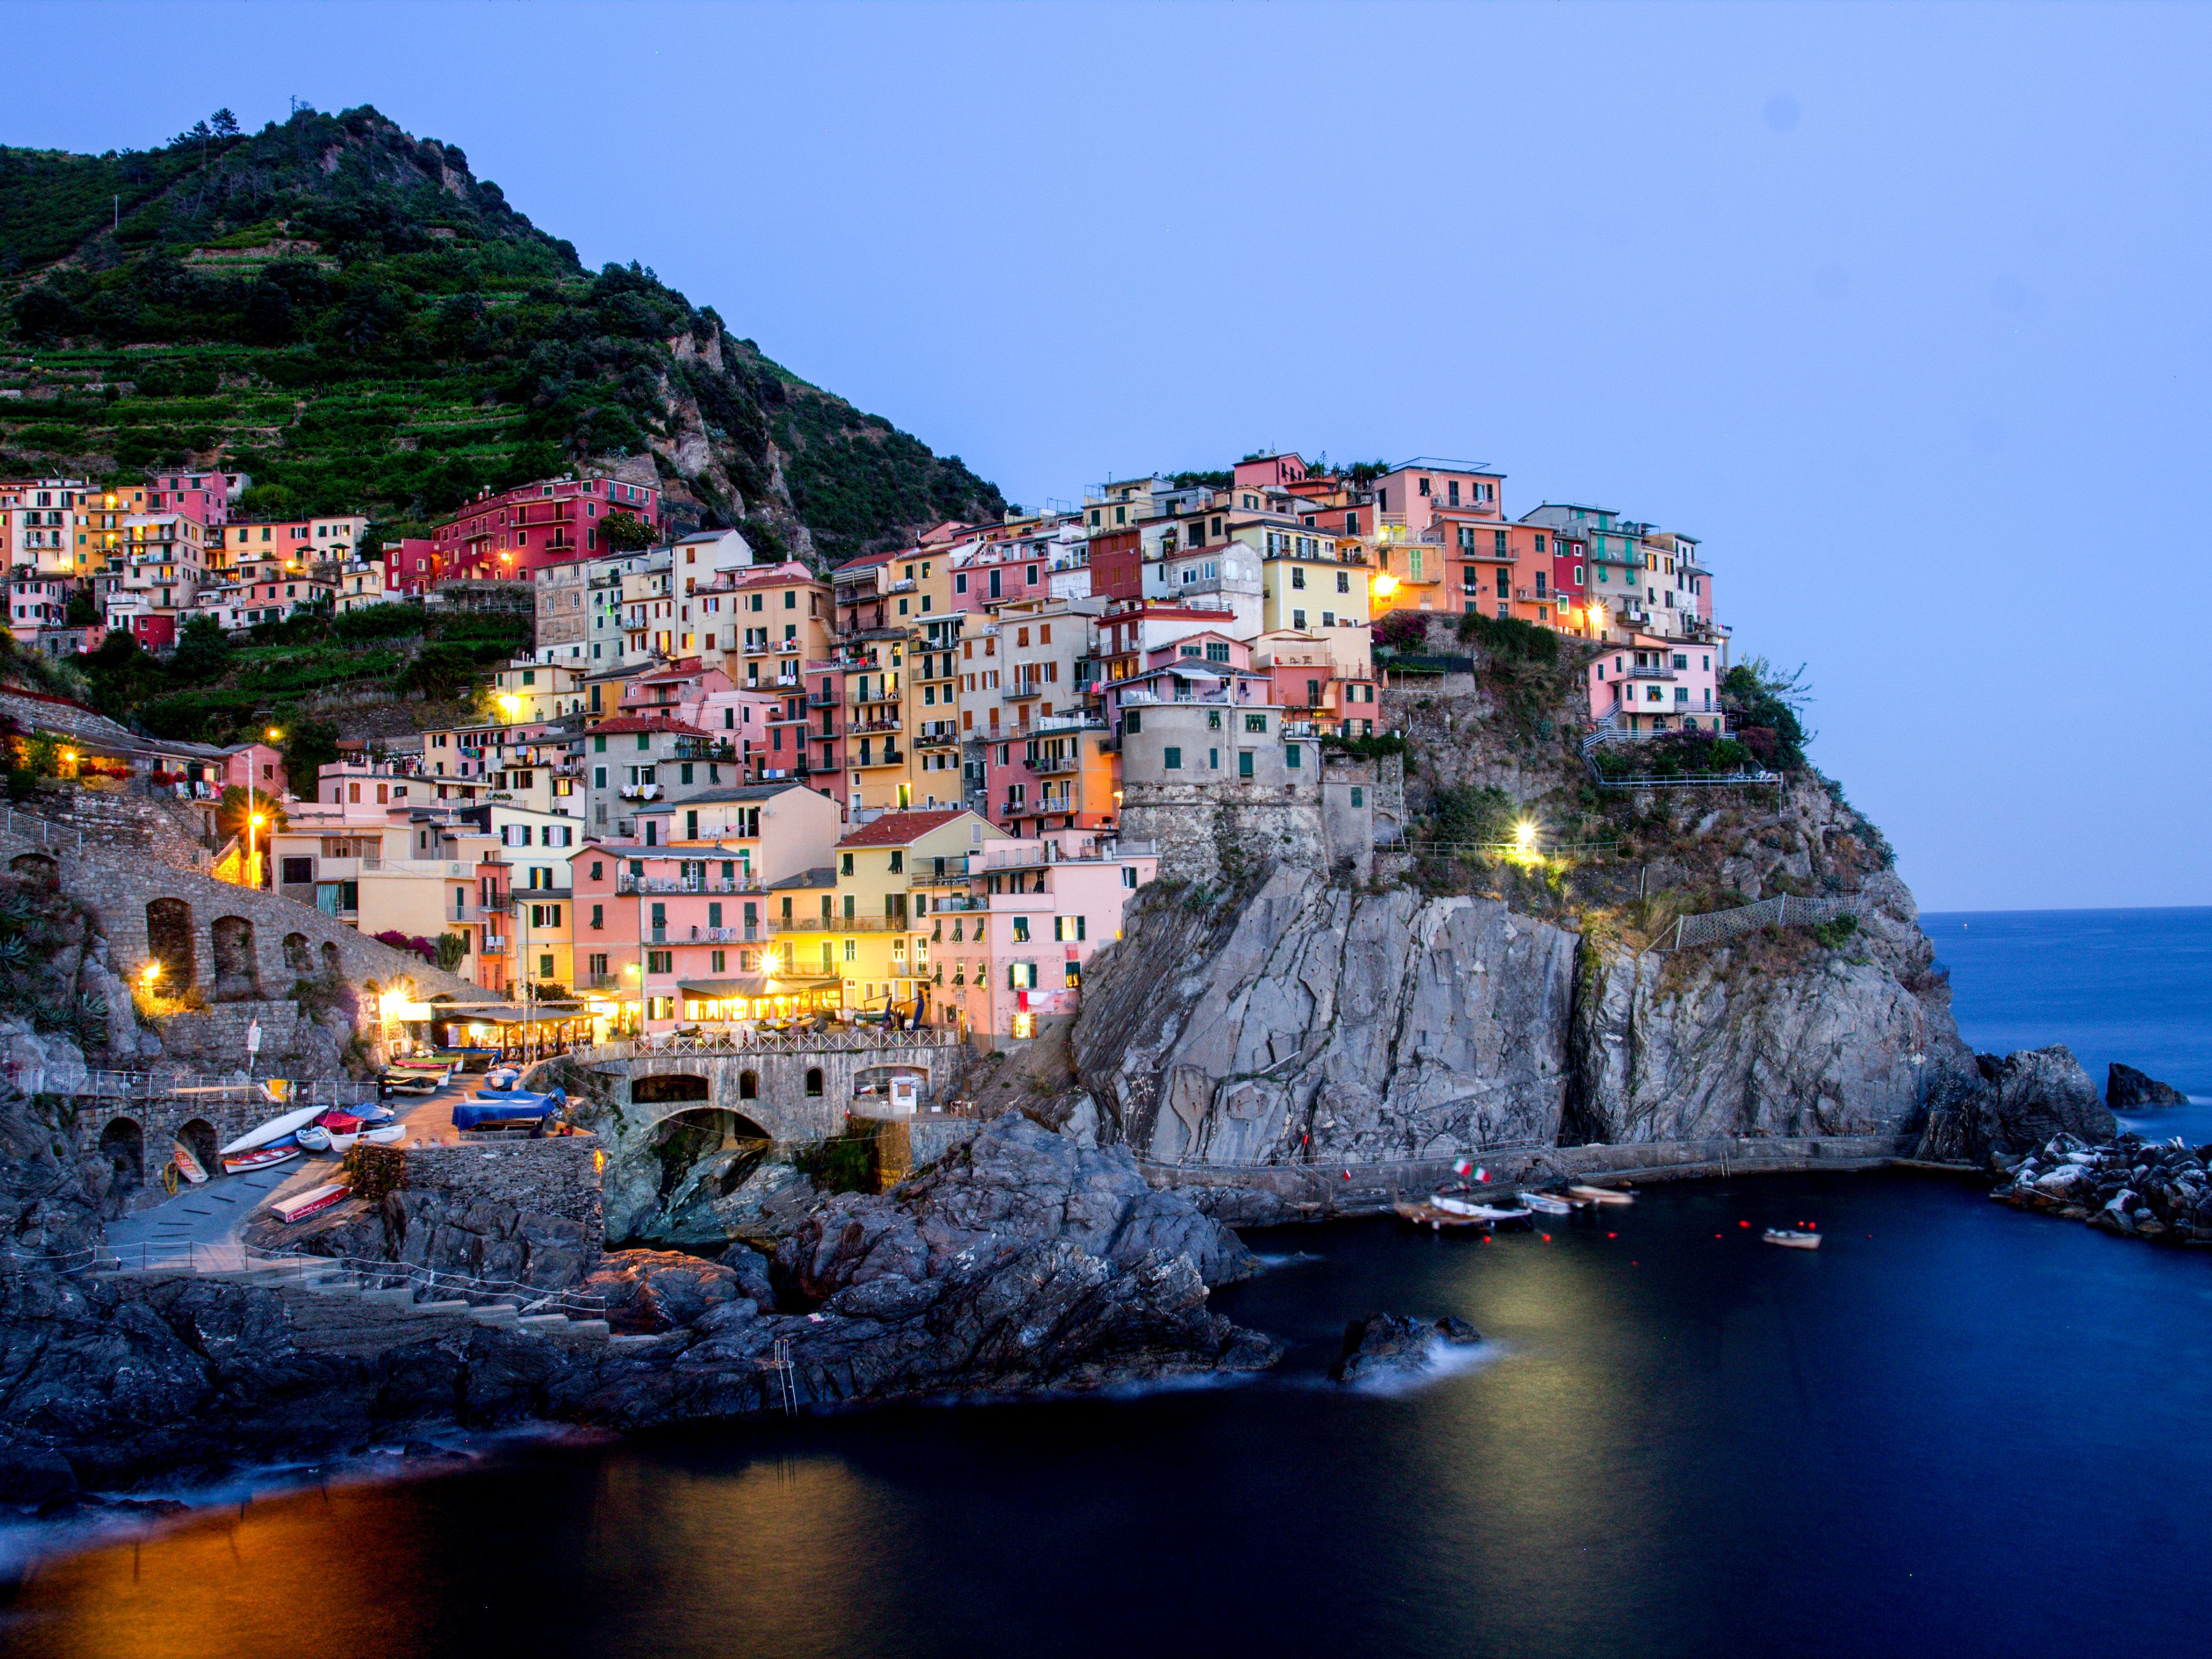 Travel Guide To The 5 Cinque Terre Villages In Italy